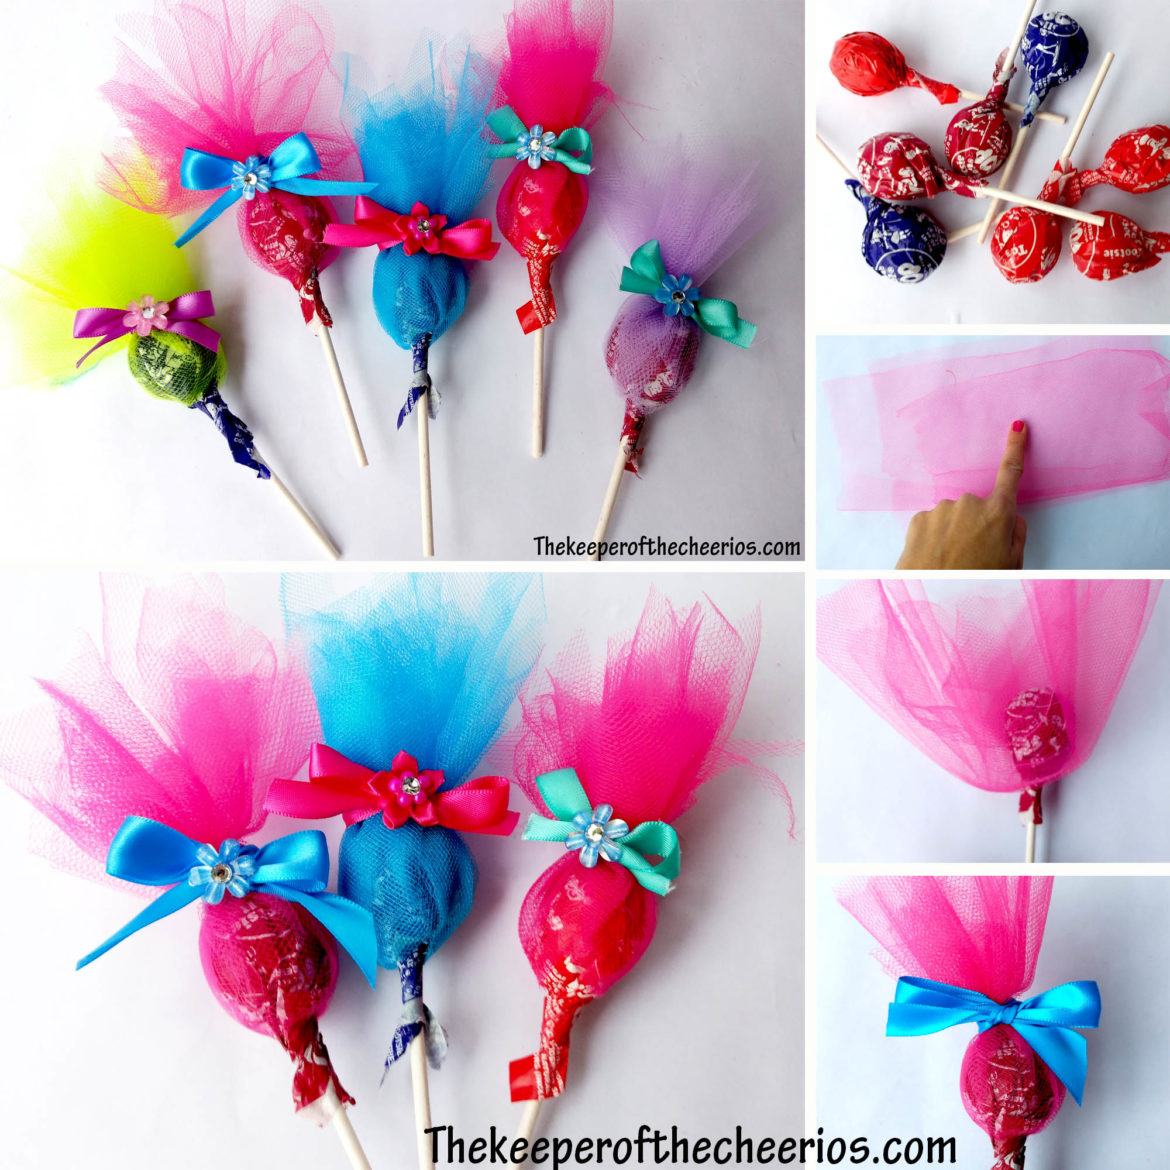 Cute halloween decorations for kids - Trolls Party Favor Suckers